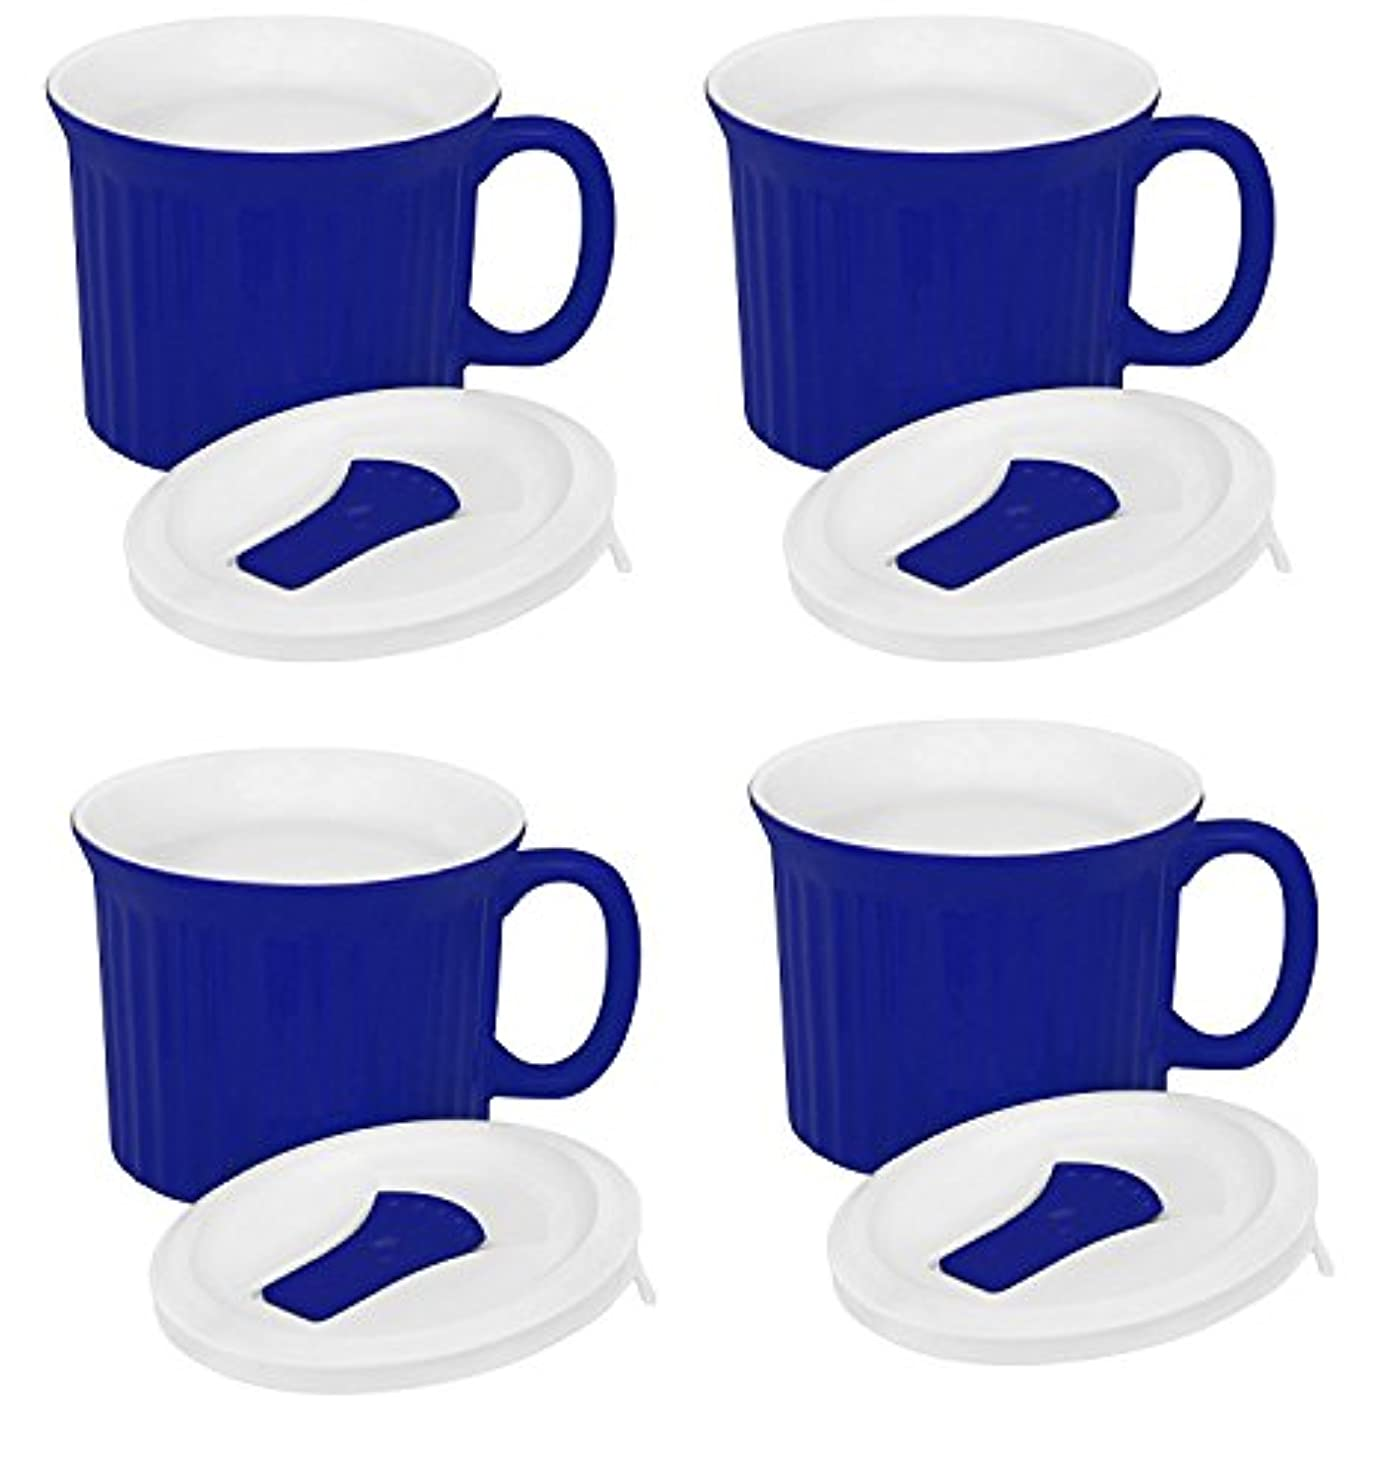 Corningware Pop-Ins 20-Ounce Mug with Blue Vented Plastic Cover, Blueberry (Pack of 4)